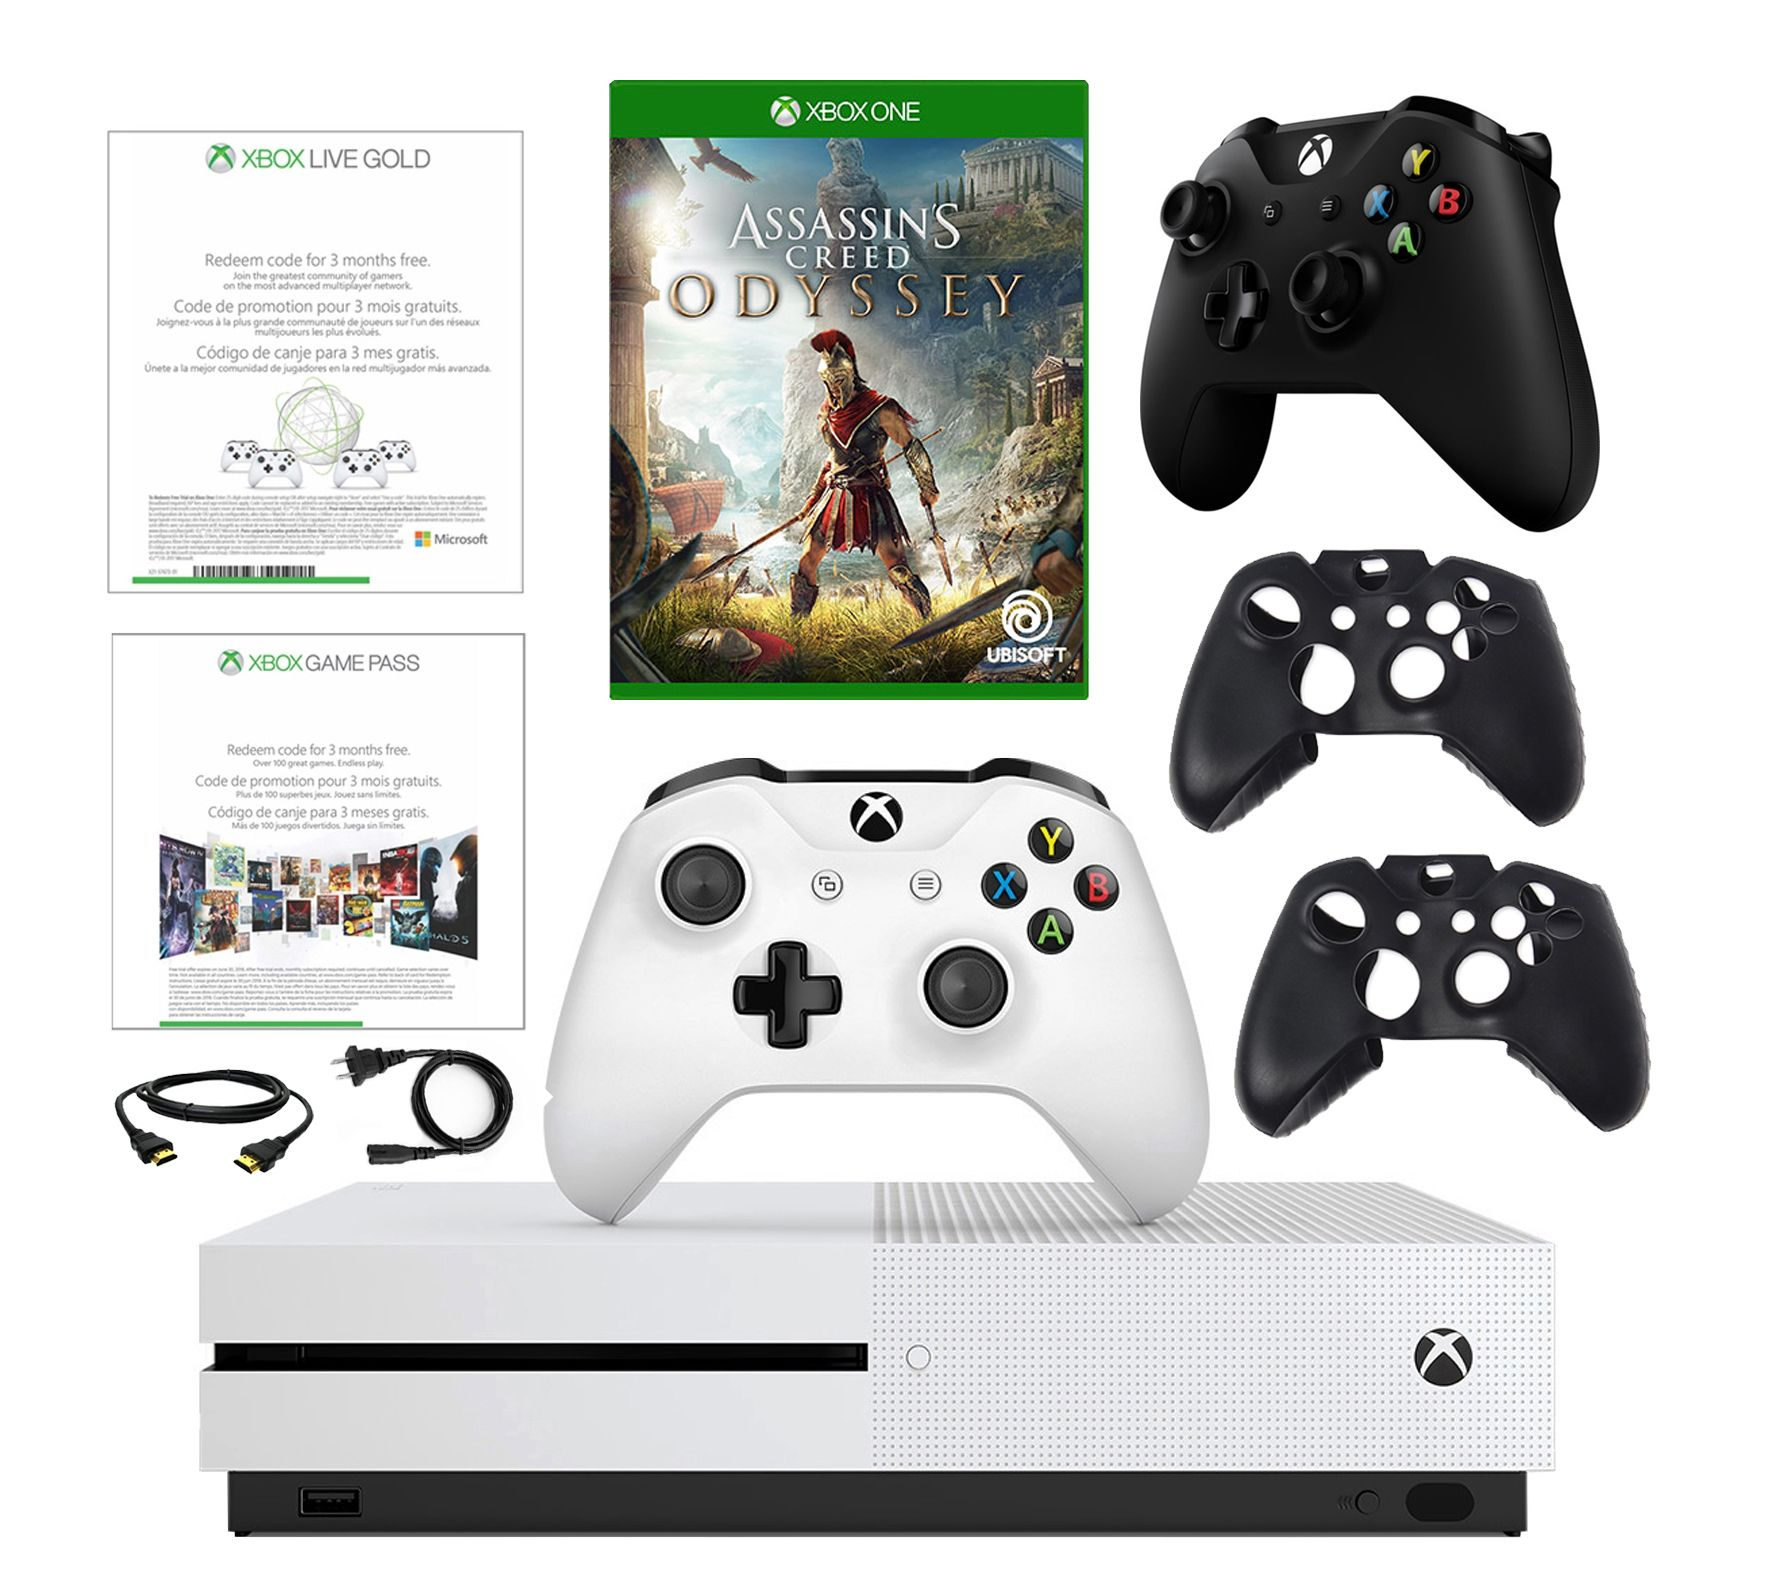 Xbox One S 1TB with Assassin's Creed Odyssey and Accessories — QVC com